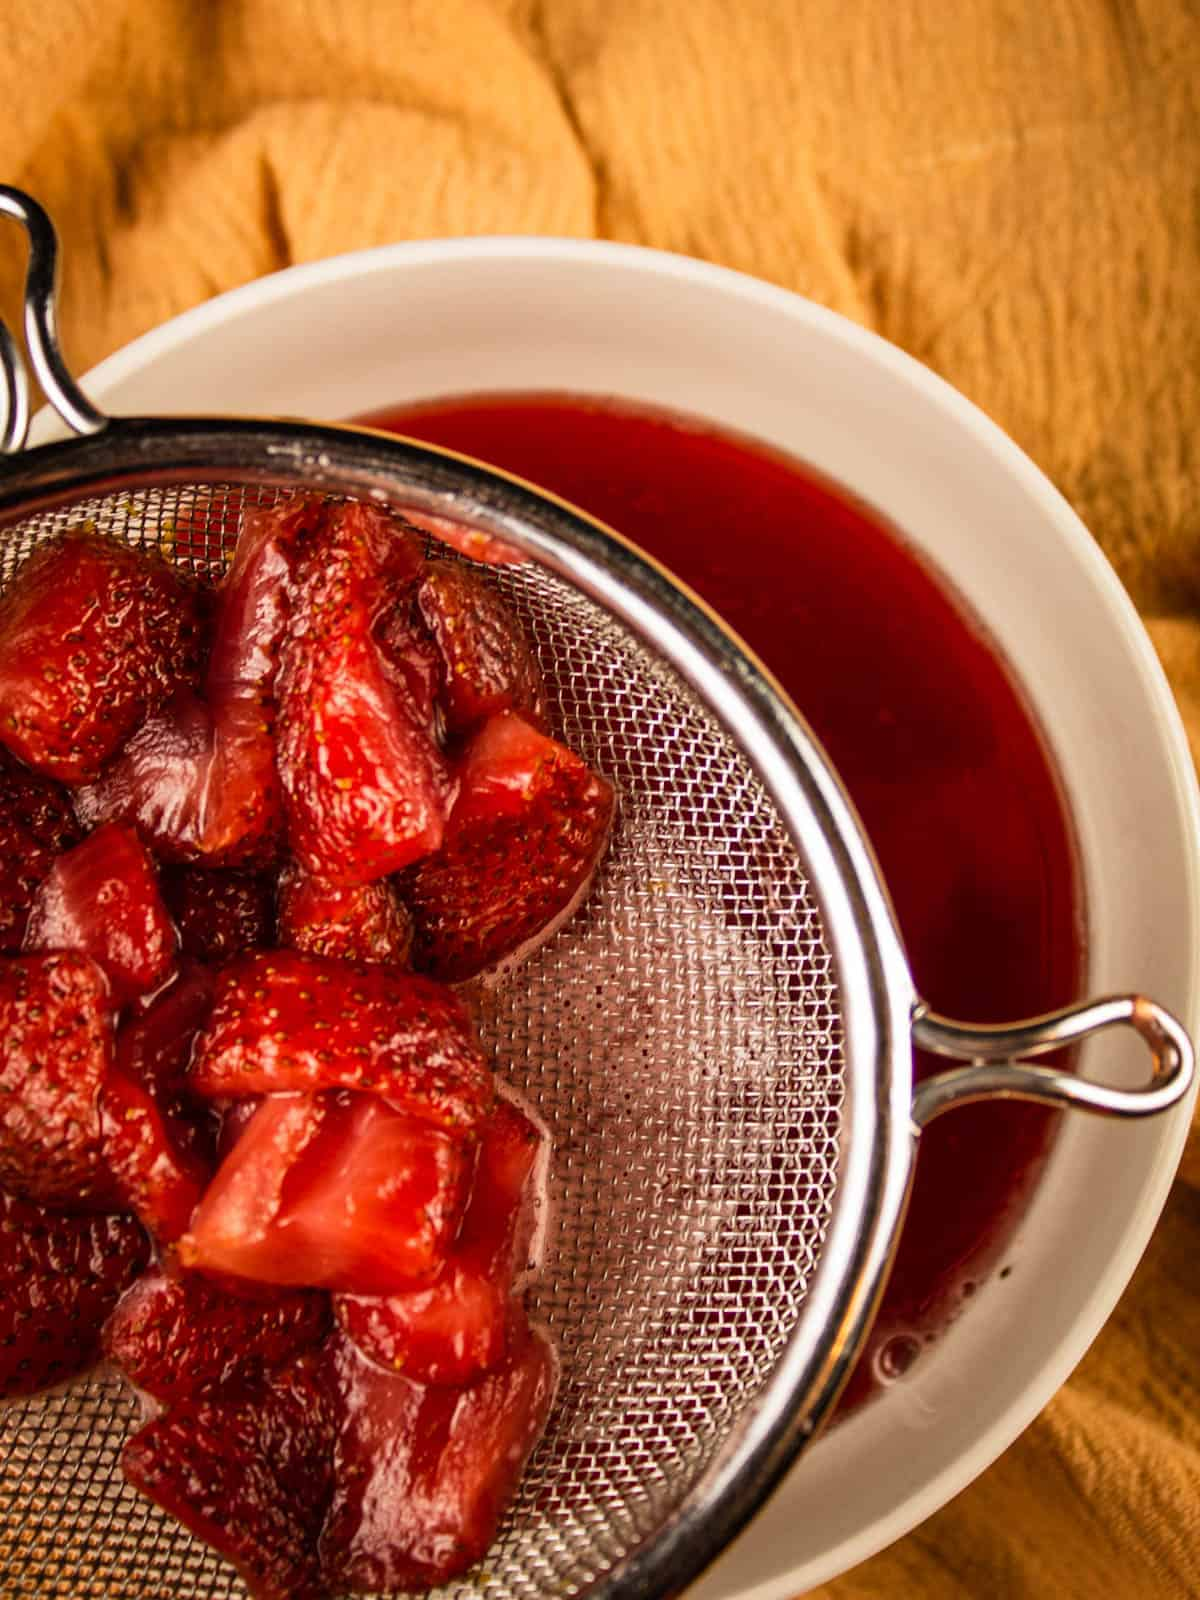 strainer filled with strawberries over a white bowl of red liquid